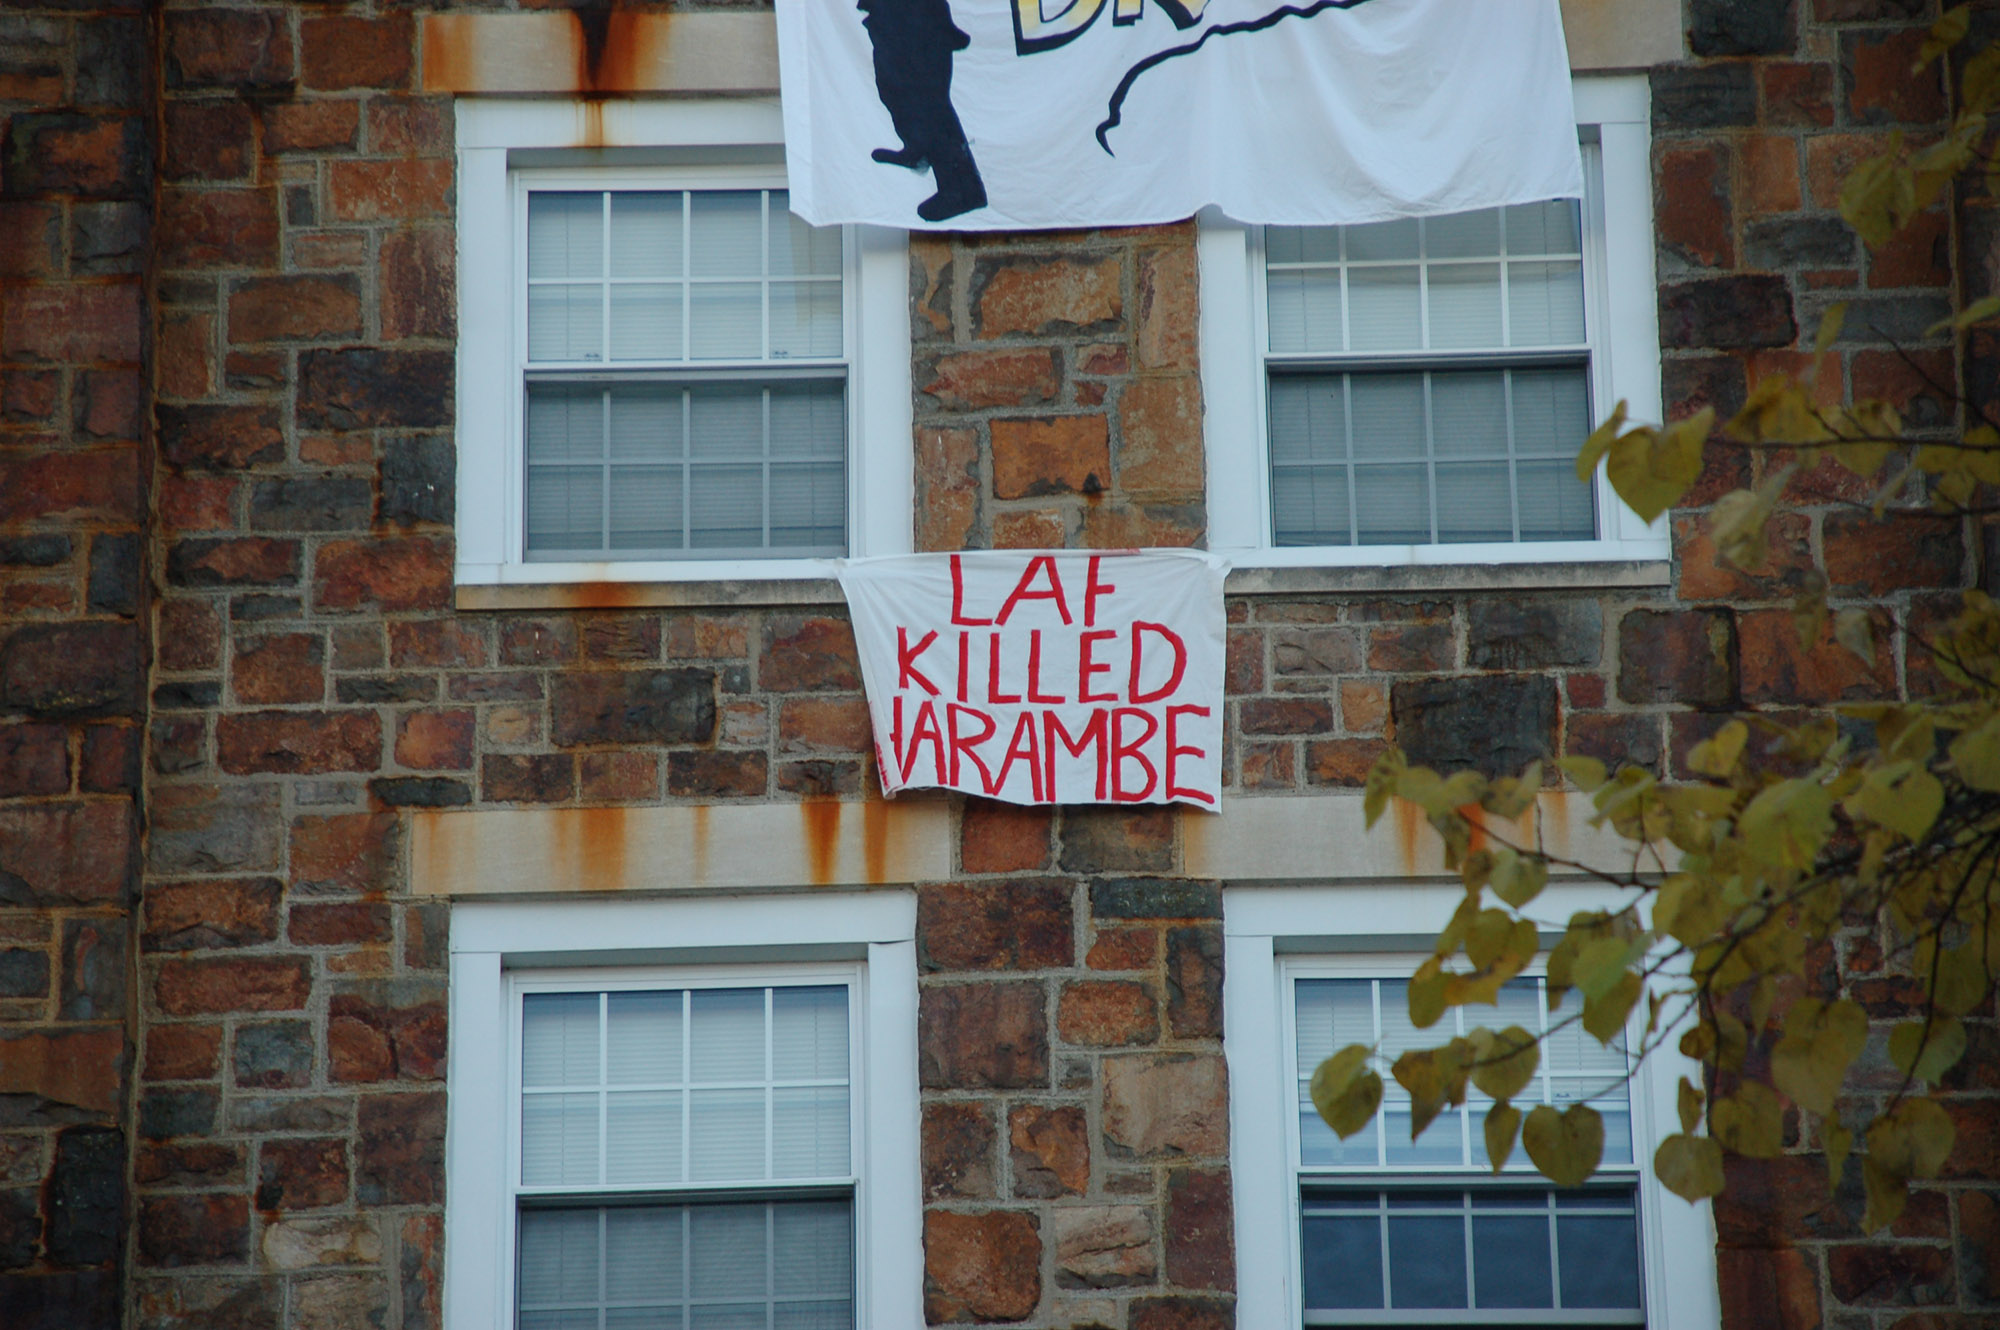 "A sign reading ""Laf killed Harambe"" hangs on Dravo House on Nov. 18, 2016. Harambe is the gorilla that was killed at the Cincinnati Zoo earlier this year. (Gaby Morera/B&W Staff)"